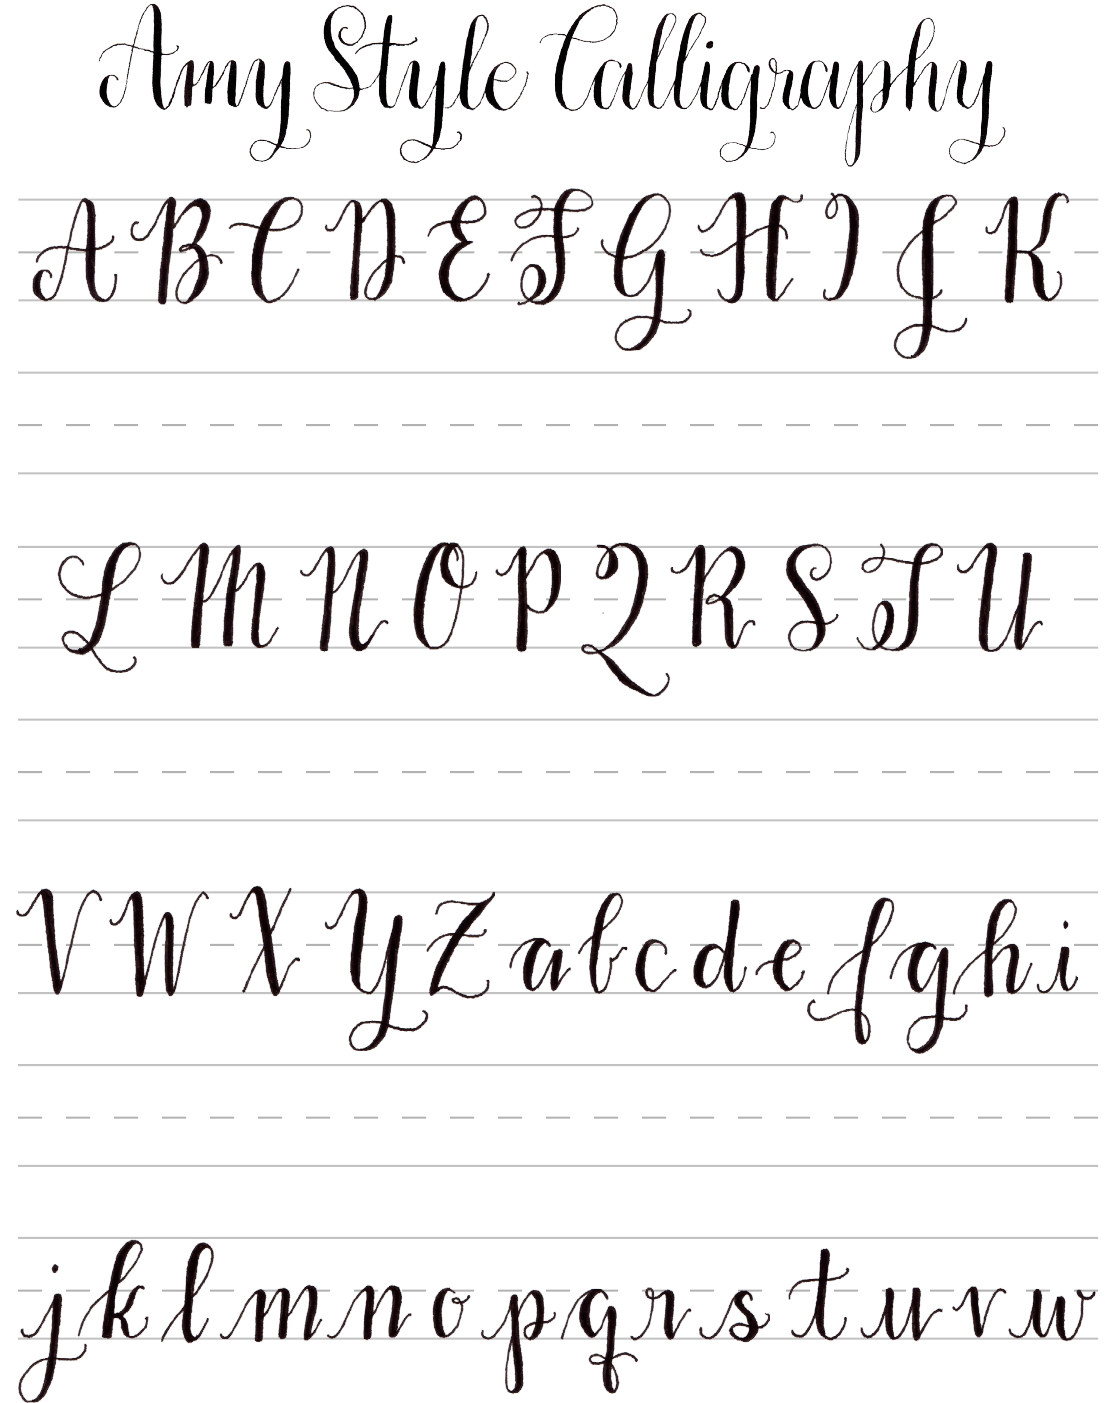 Free Calligraphy Worksheets For Learning Free Calligraphy